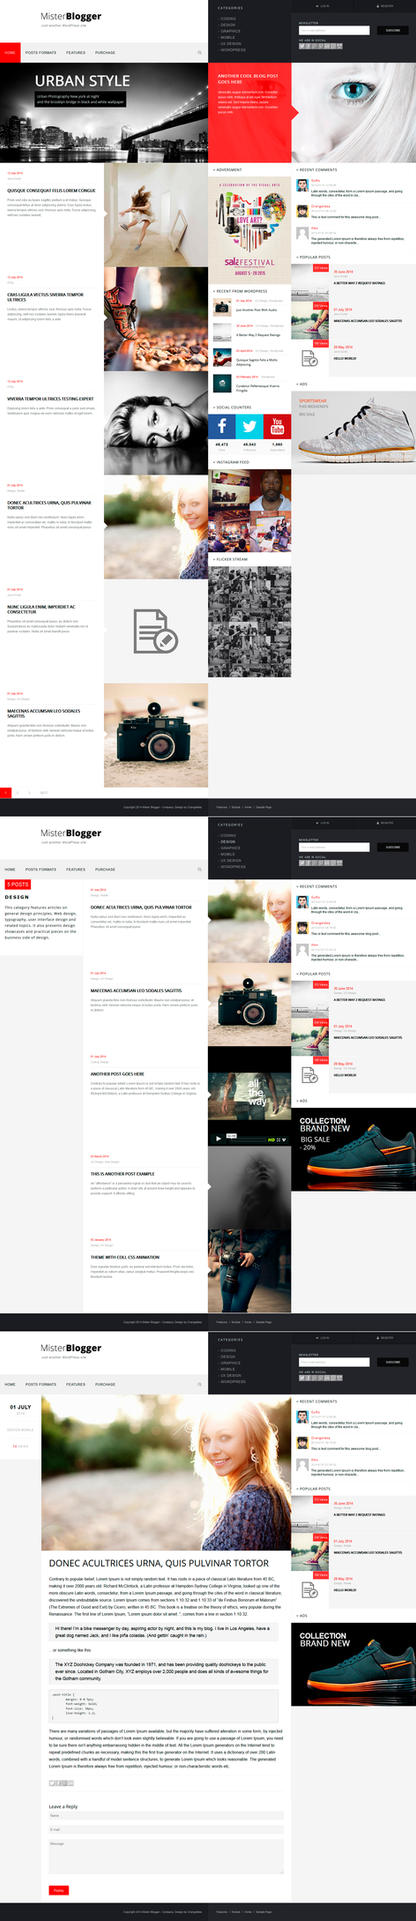 MisterBlogger - Blog/Magazine WordPress Theme by OrangeIdea